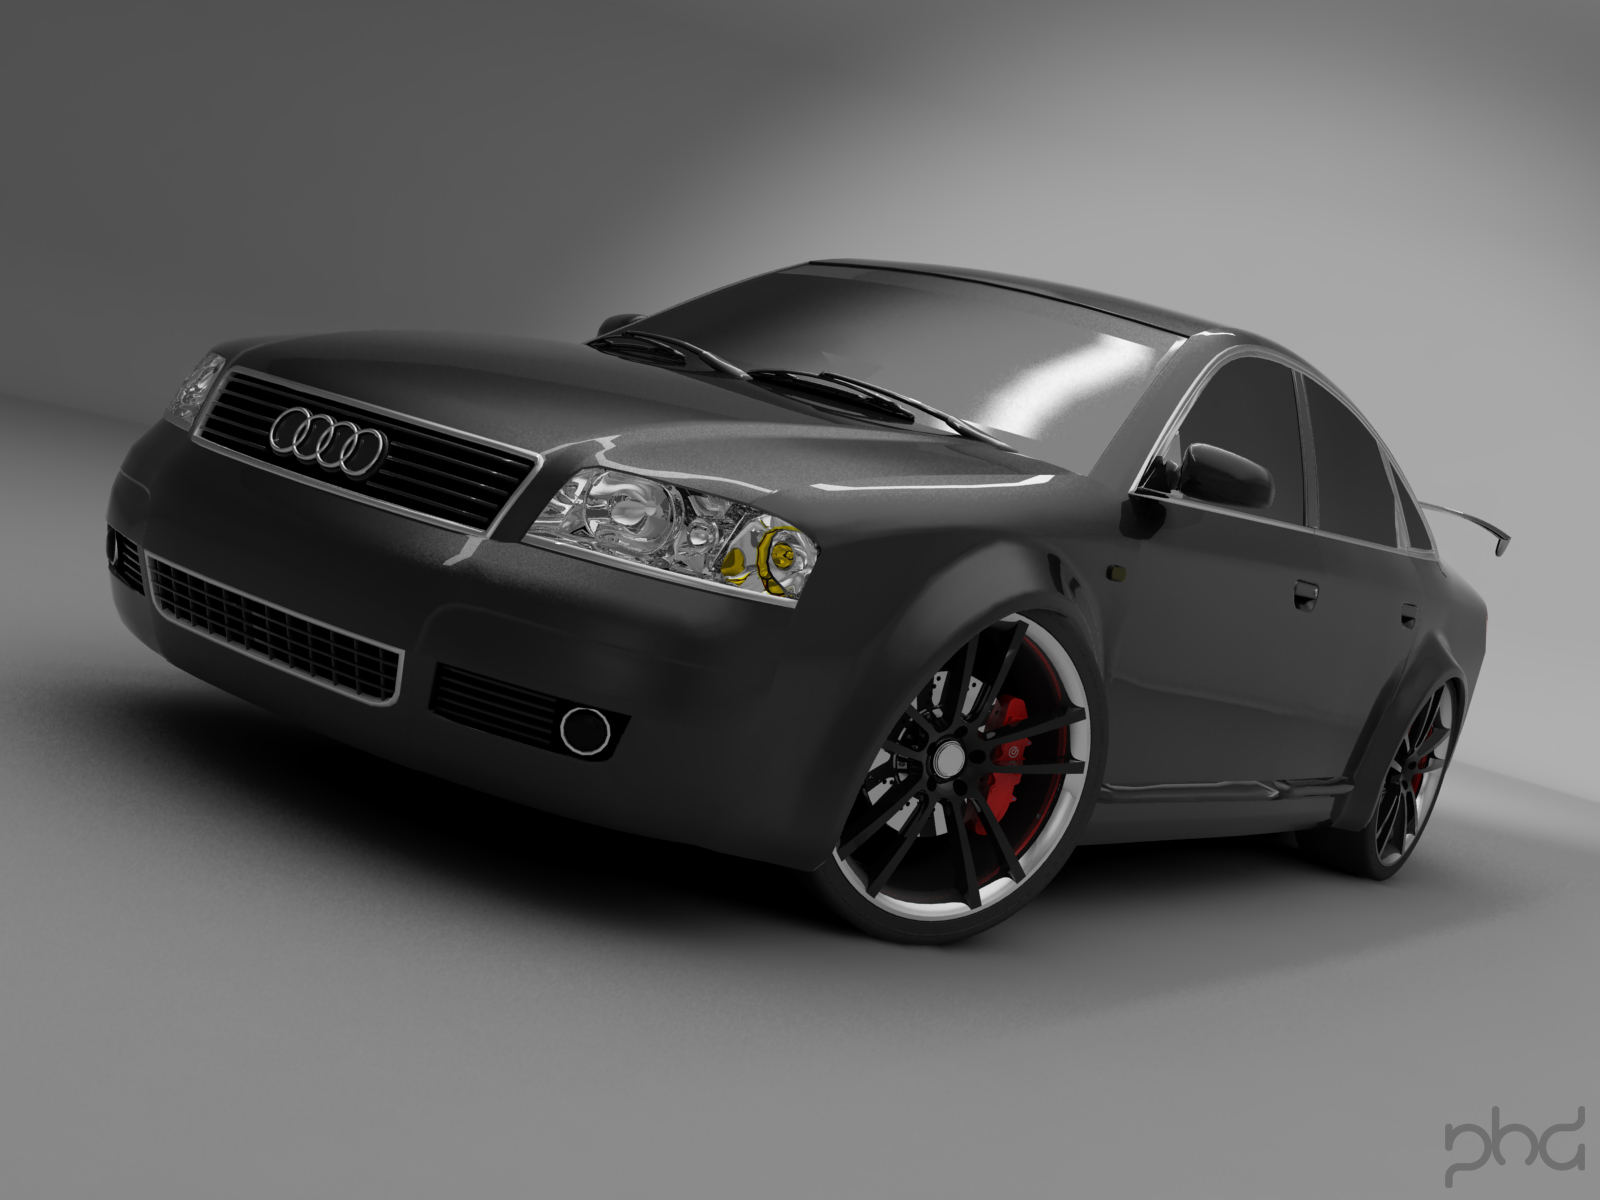 audi a6 2002 tuning photoshop tuning virtual tuning. Black Bedroom Furniture Sets. Home Design Ideas